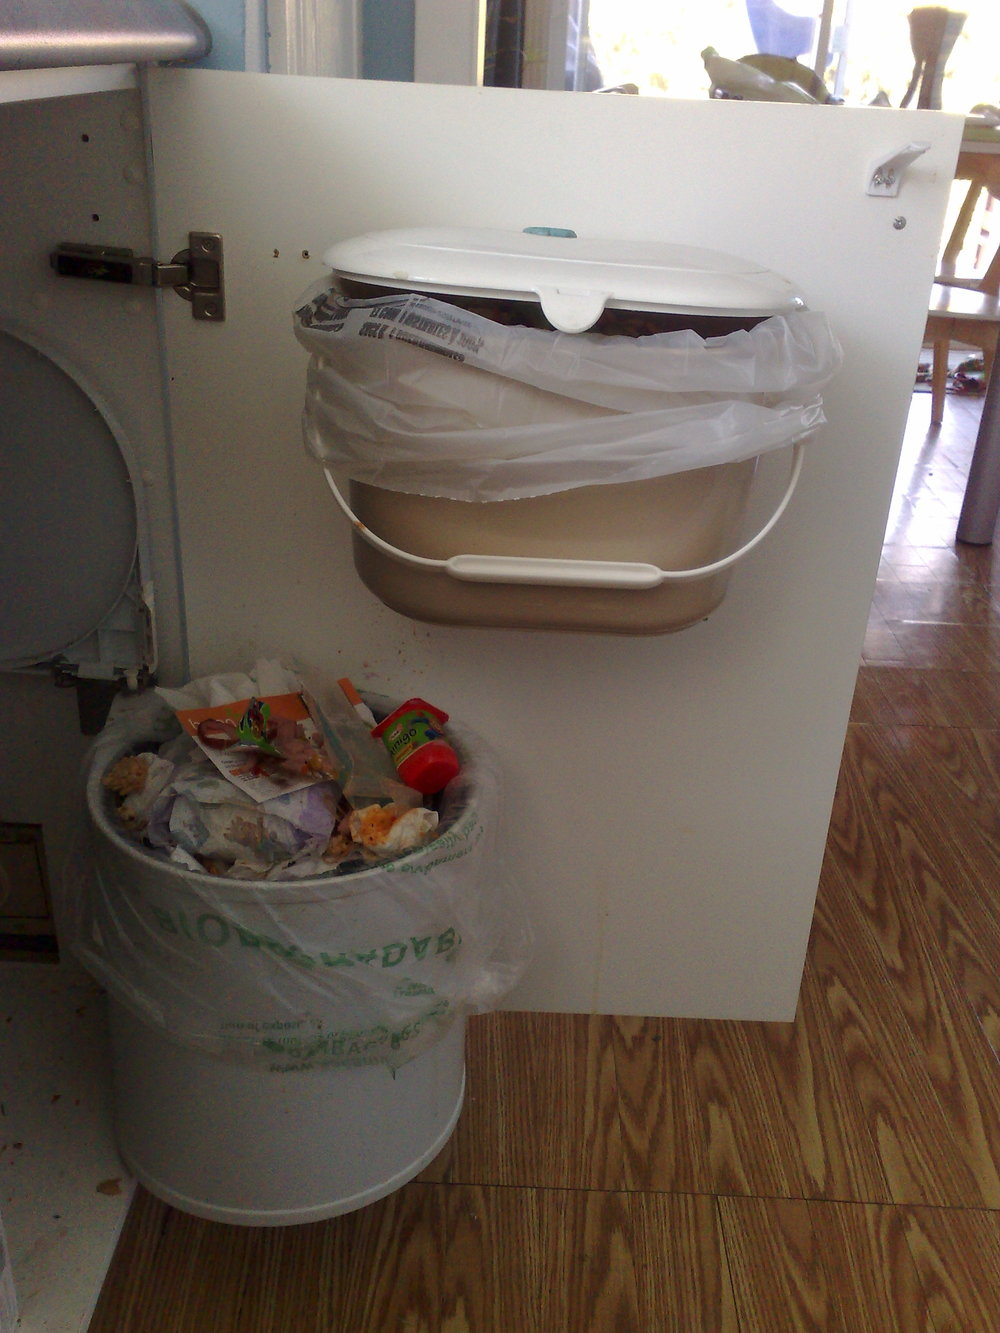 Kitchen Bin *above* Garbage by Nicolas Marchildon /CC BY